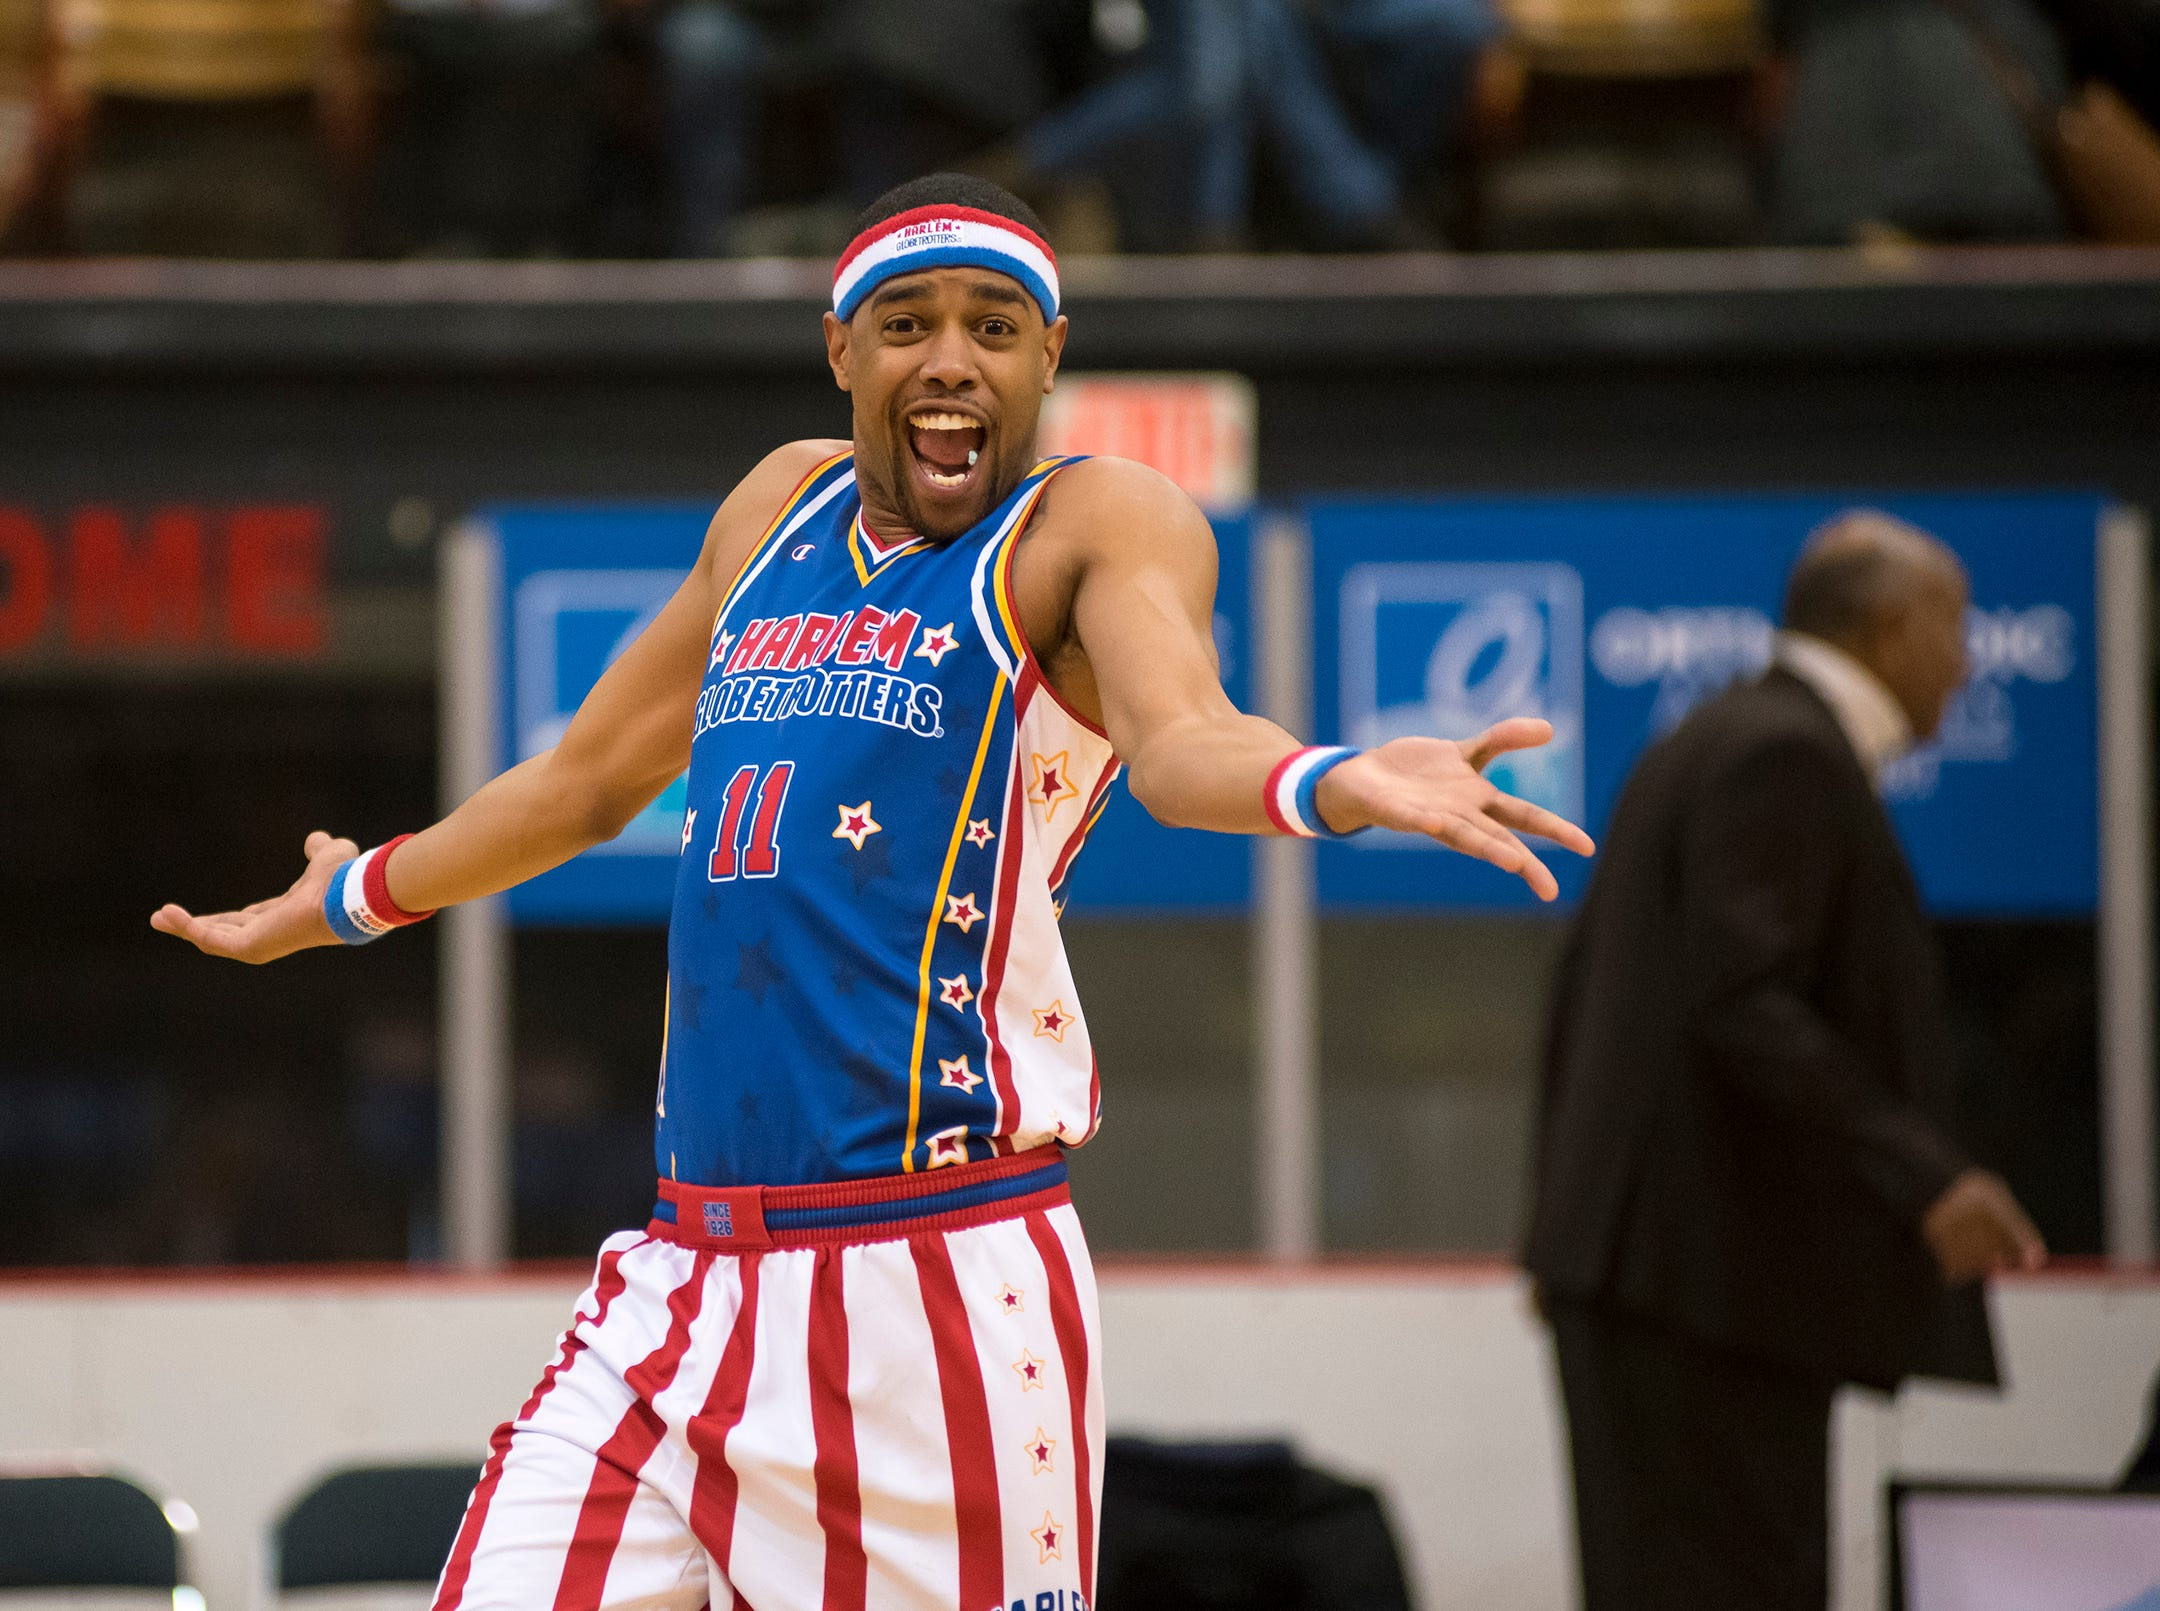 Harlem Globetrotters guard Cheese celebrates a point at the start of the Globetrotters' game against the Washington Generals Saturday, Feb. 2, 2019 at McMorran Arena.